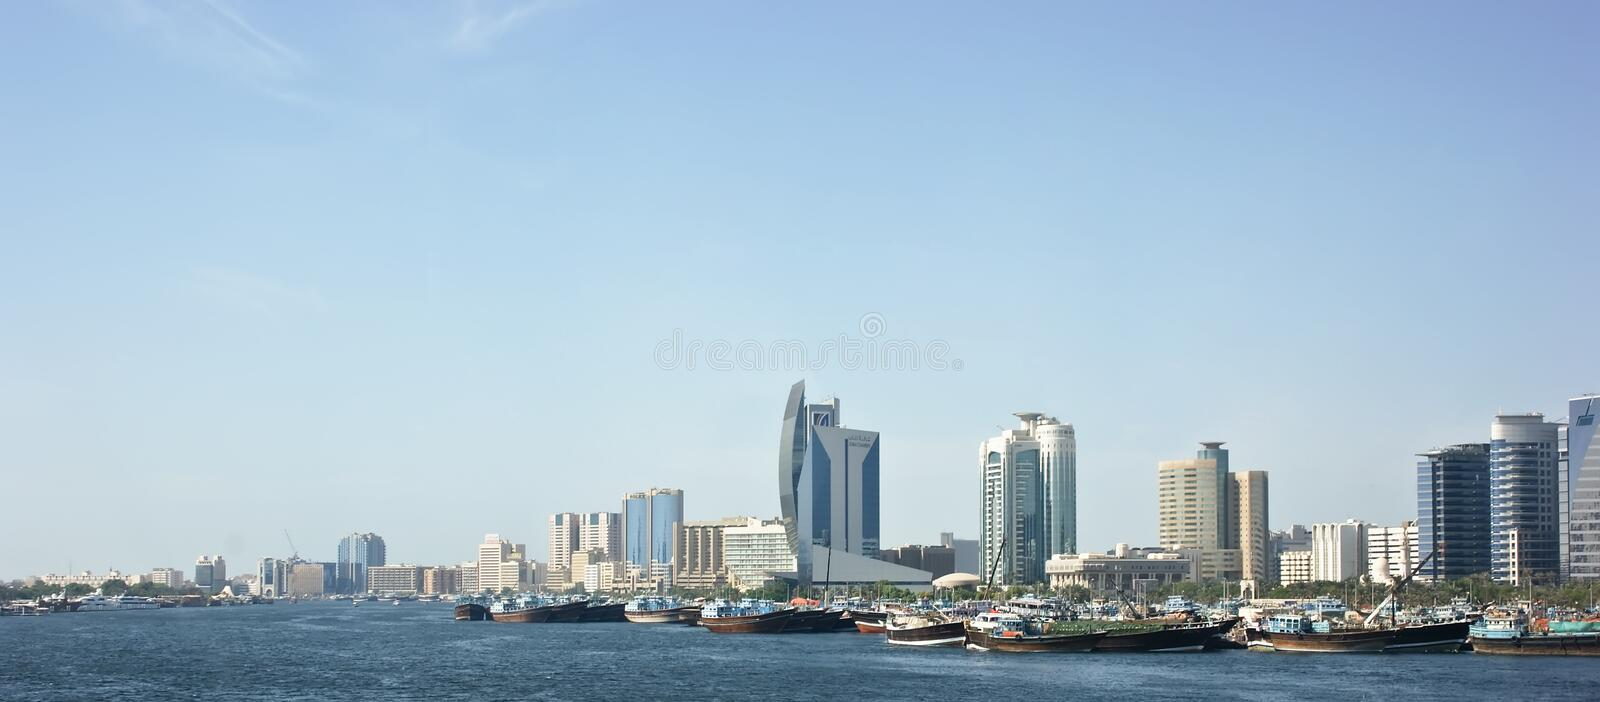 DUBAI, UAE , Deira , Port Said, the Bay Creek